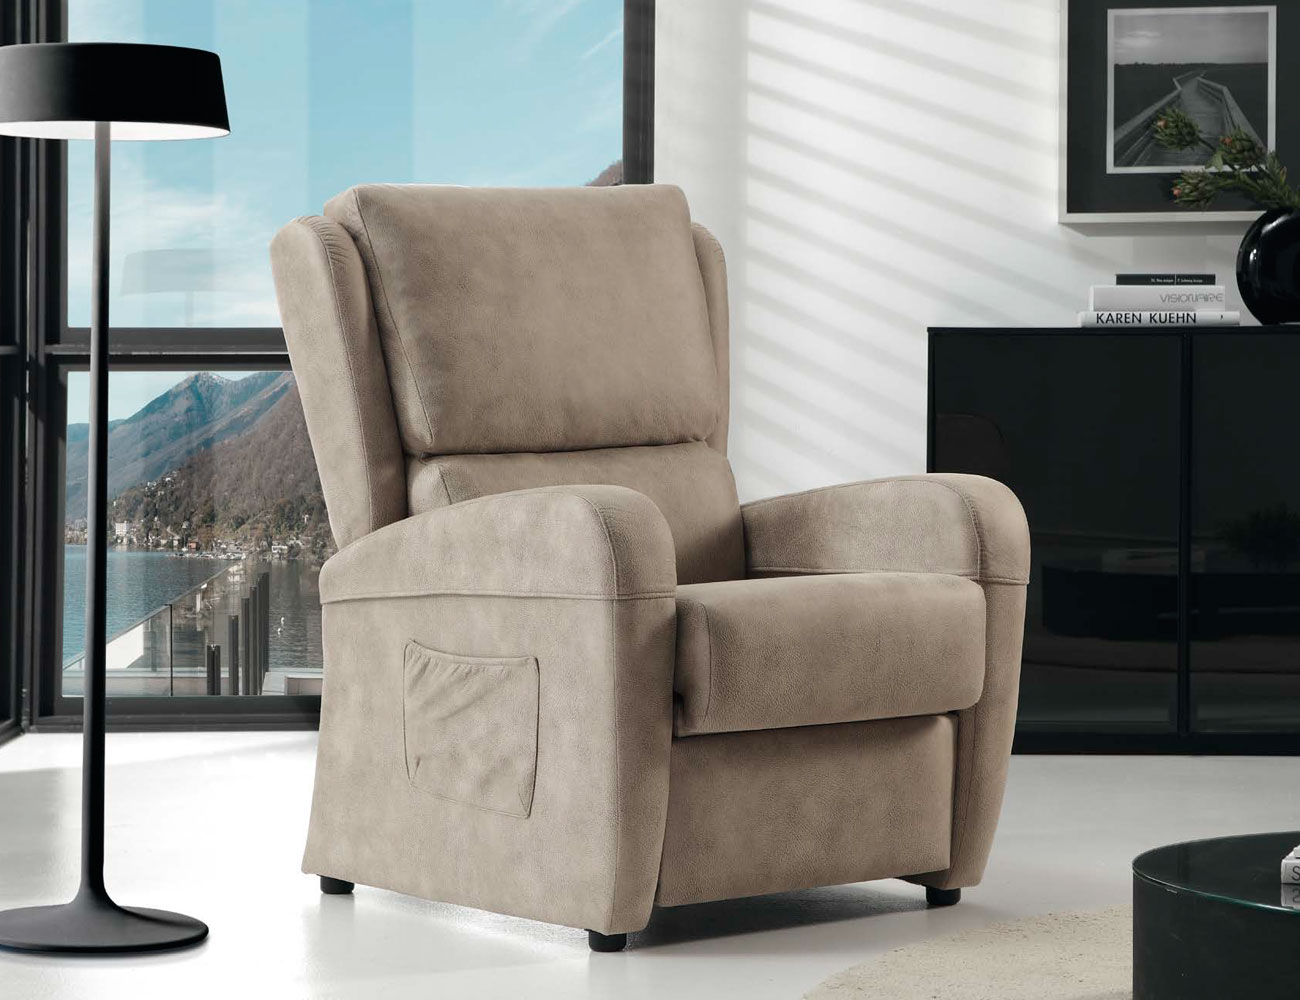 Sillon relax manual jana6